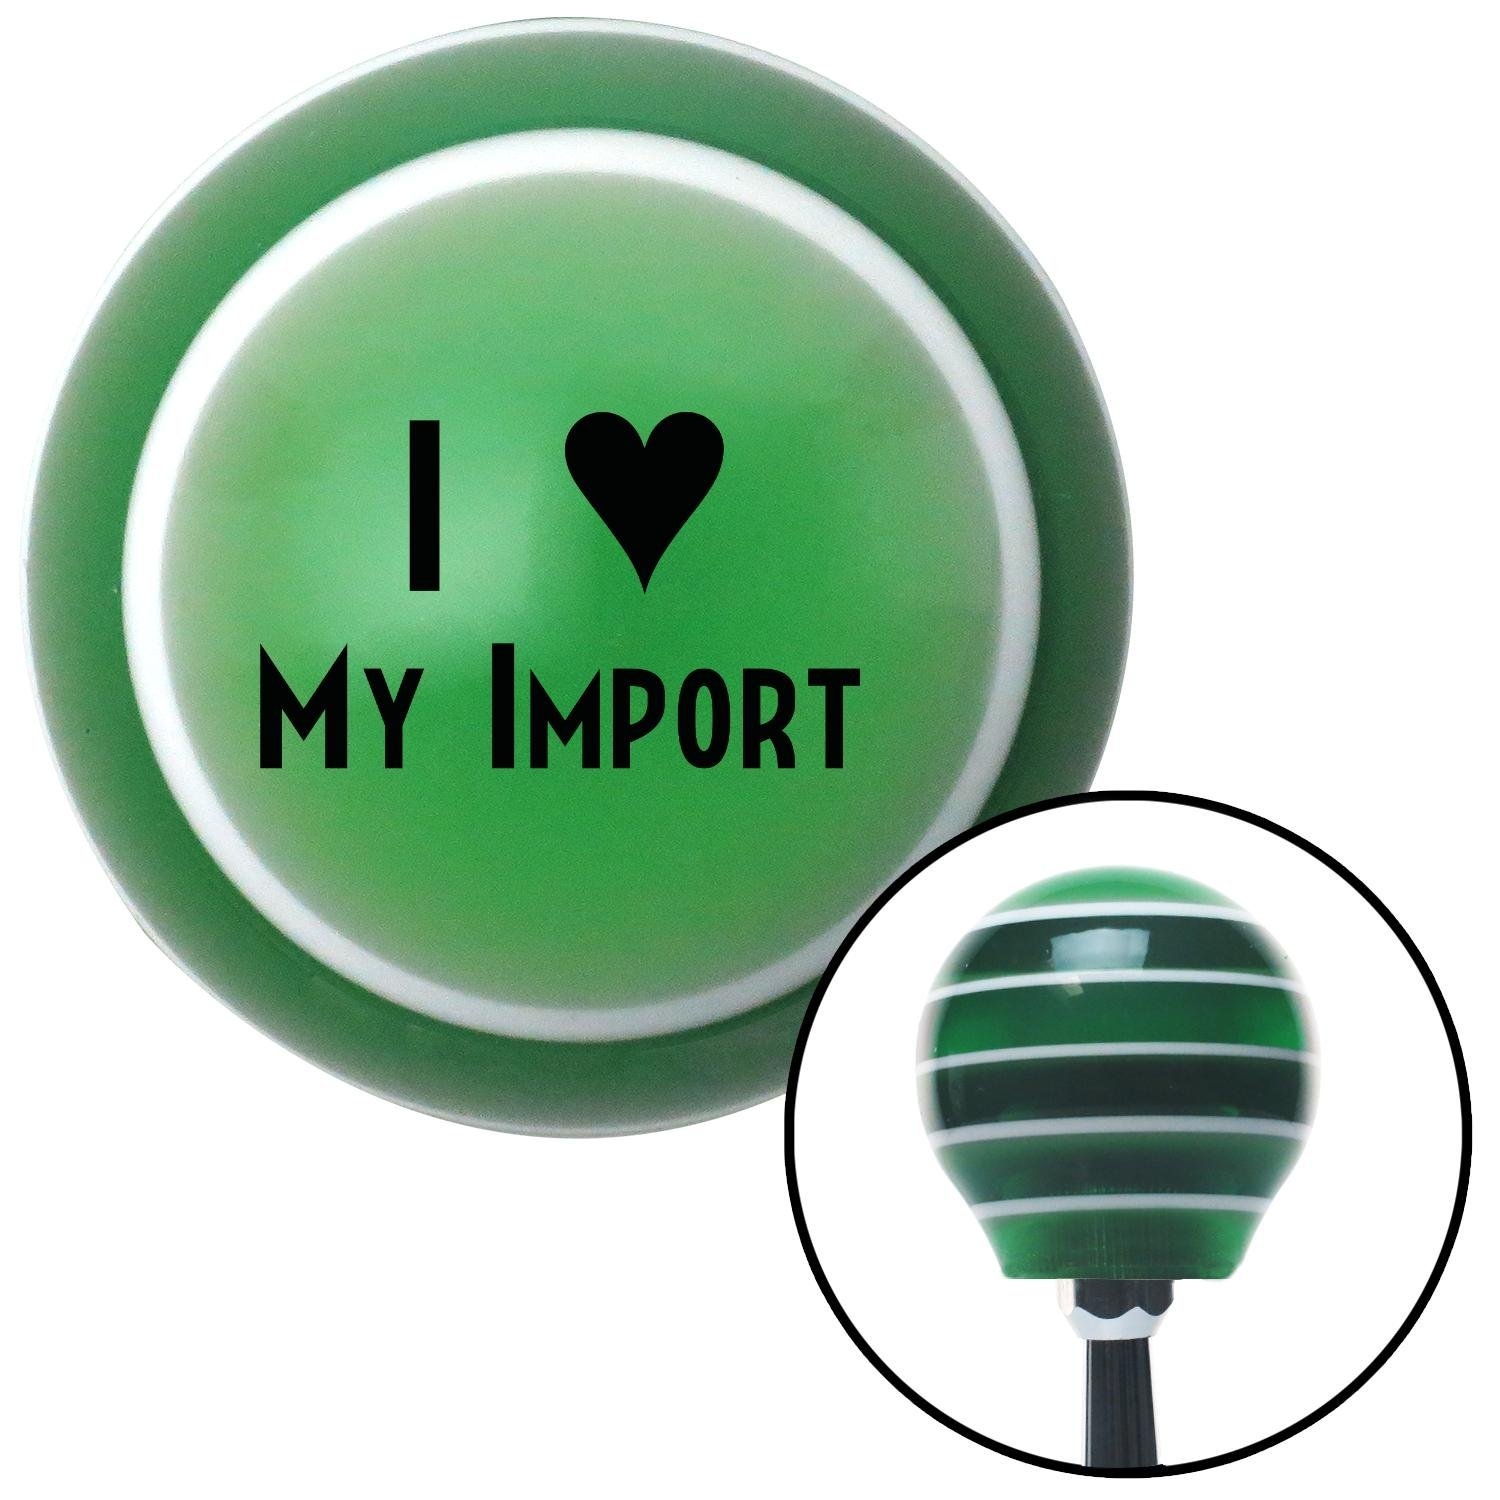 American Shifter 123702 Green Stripe Shift Knob with M16 x 1.5 Insert Black I 3 My Import